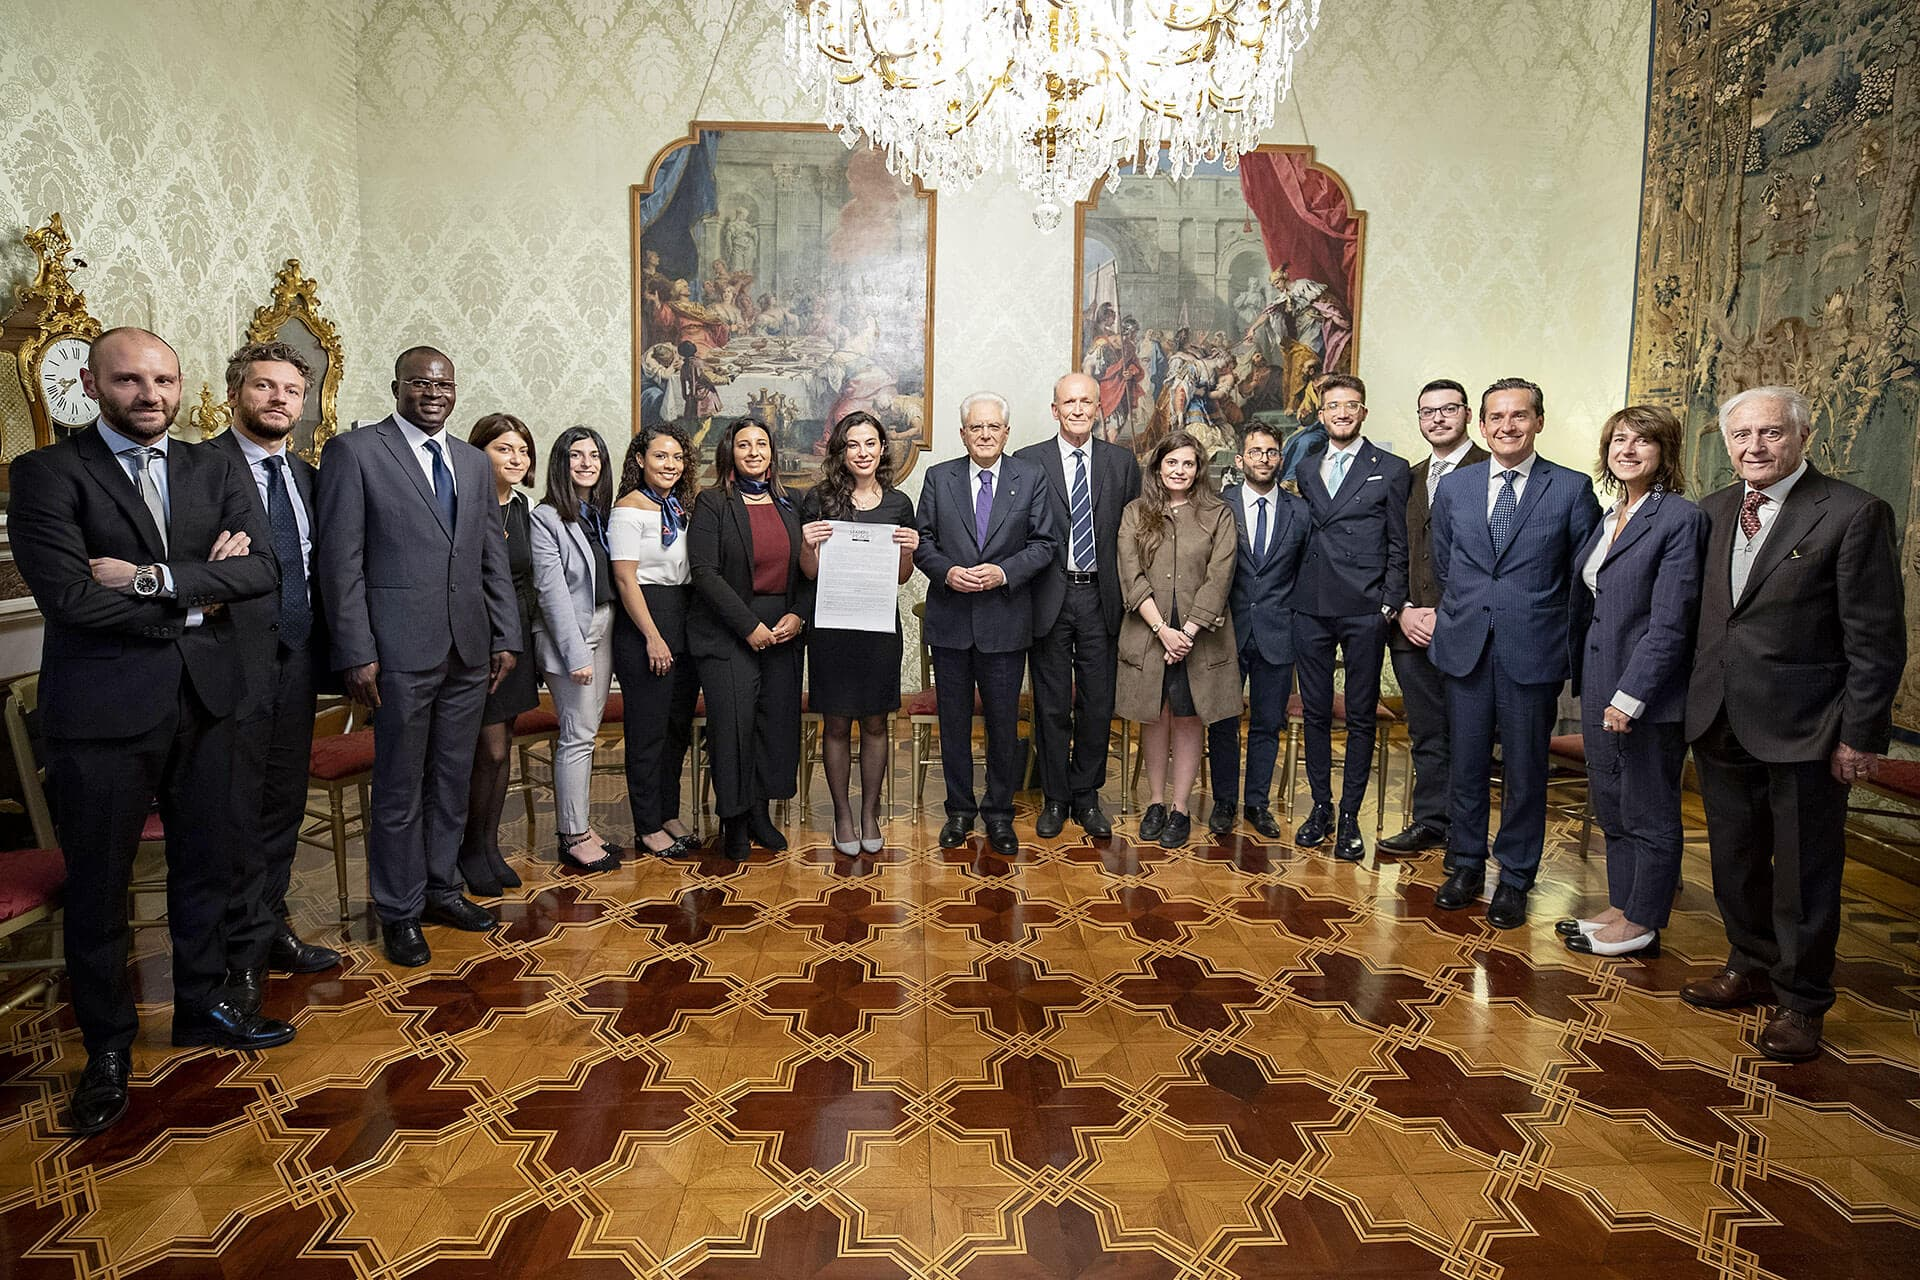 Rondine meets president Mattarella: the first Head of State receiving the appeal to be presented at the United Nations